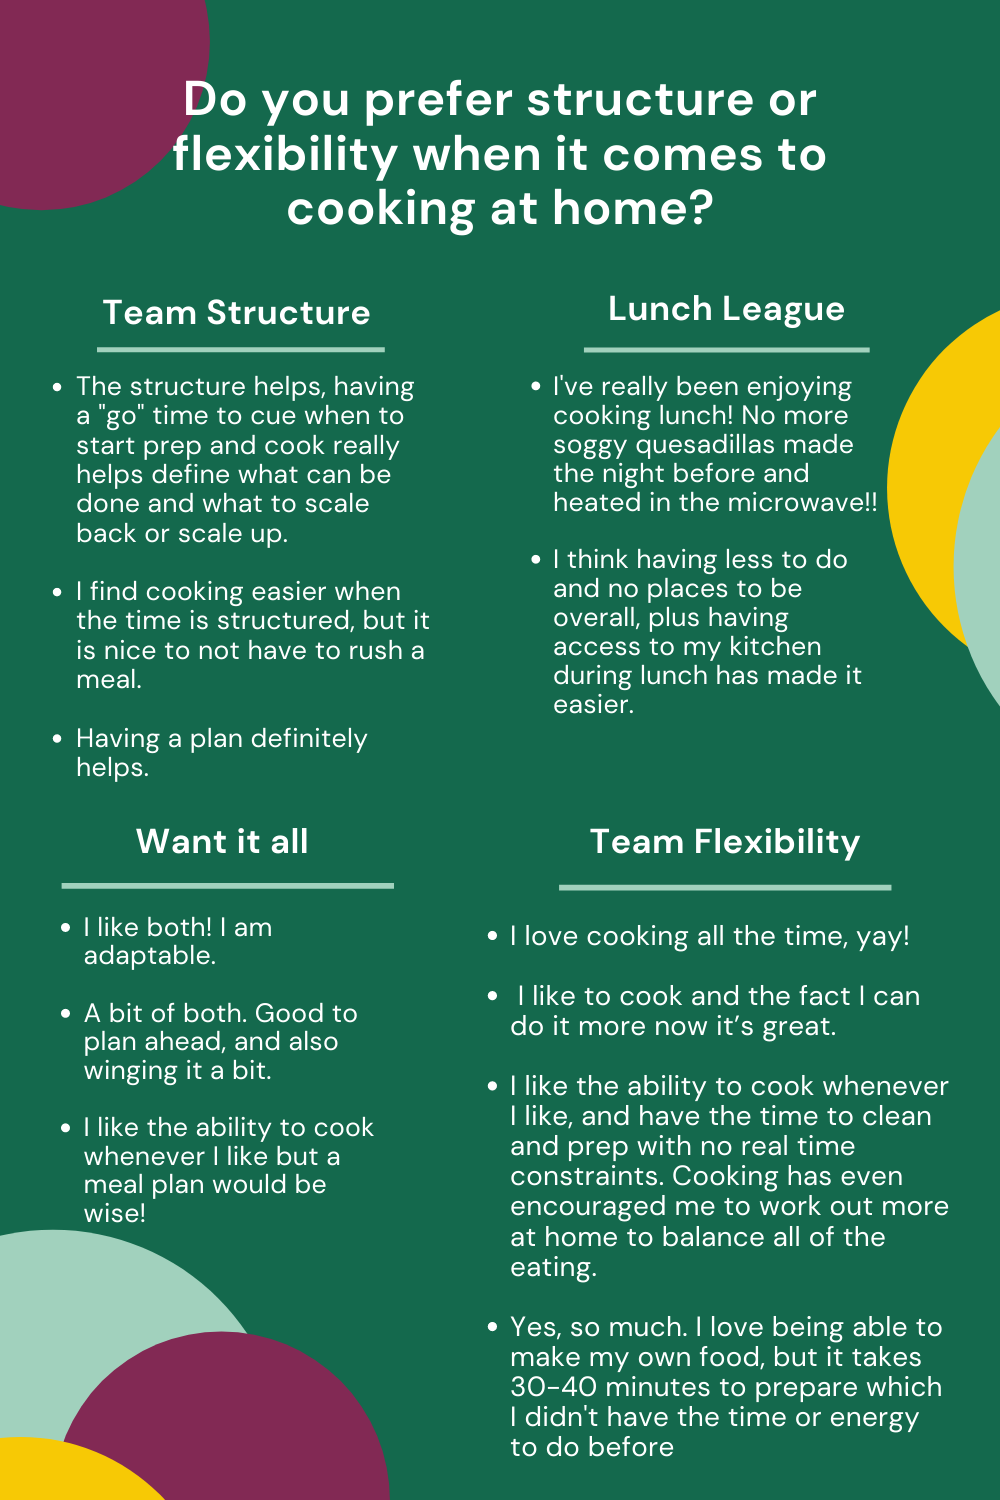 Ways to structure cooking at home: team structure, lunch league, team flexibility, or a combination